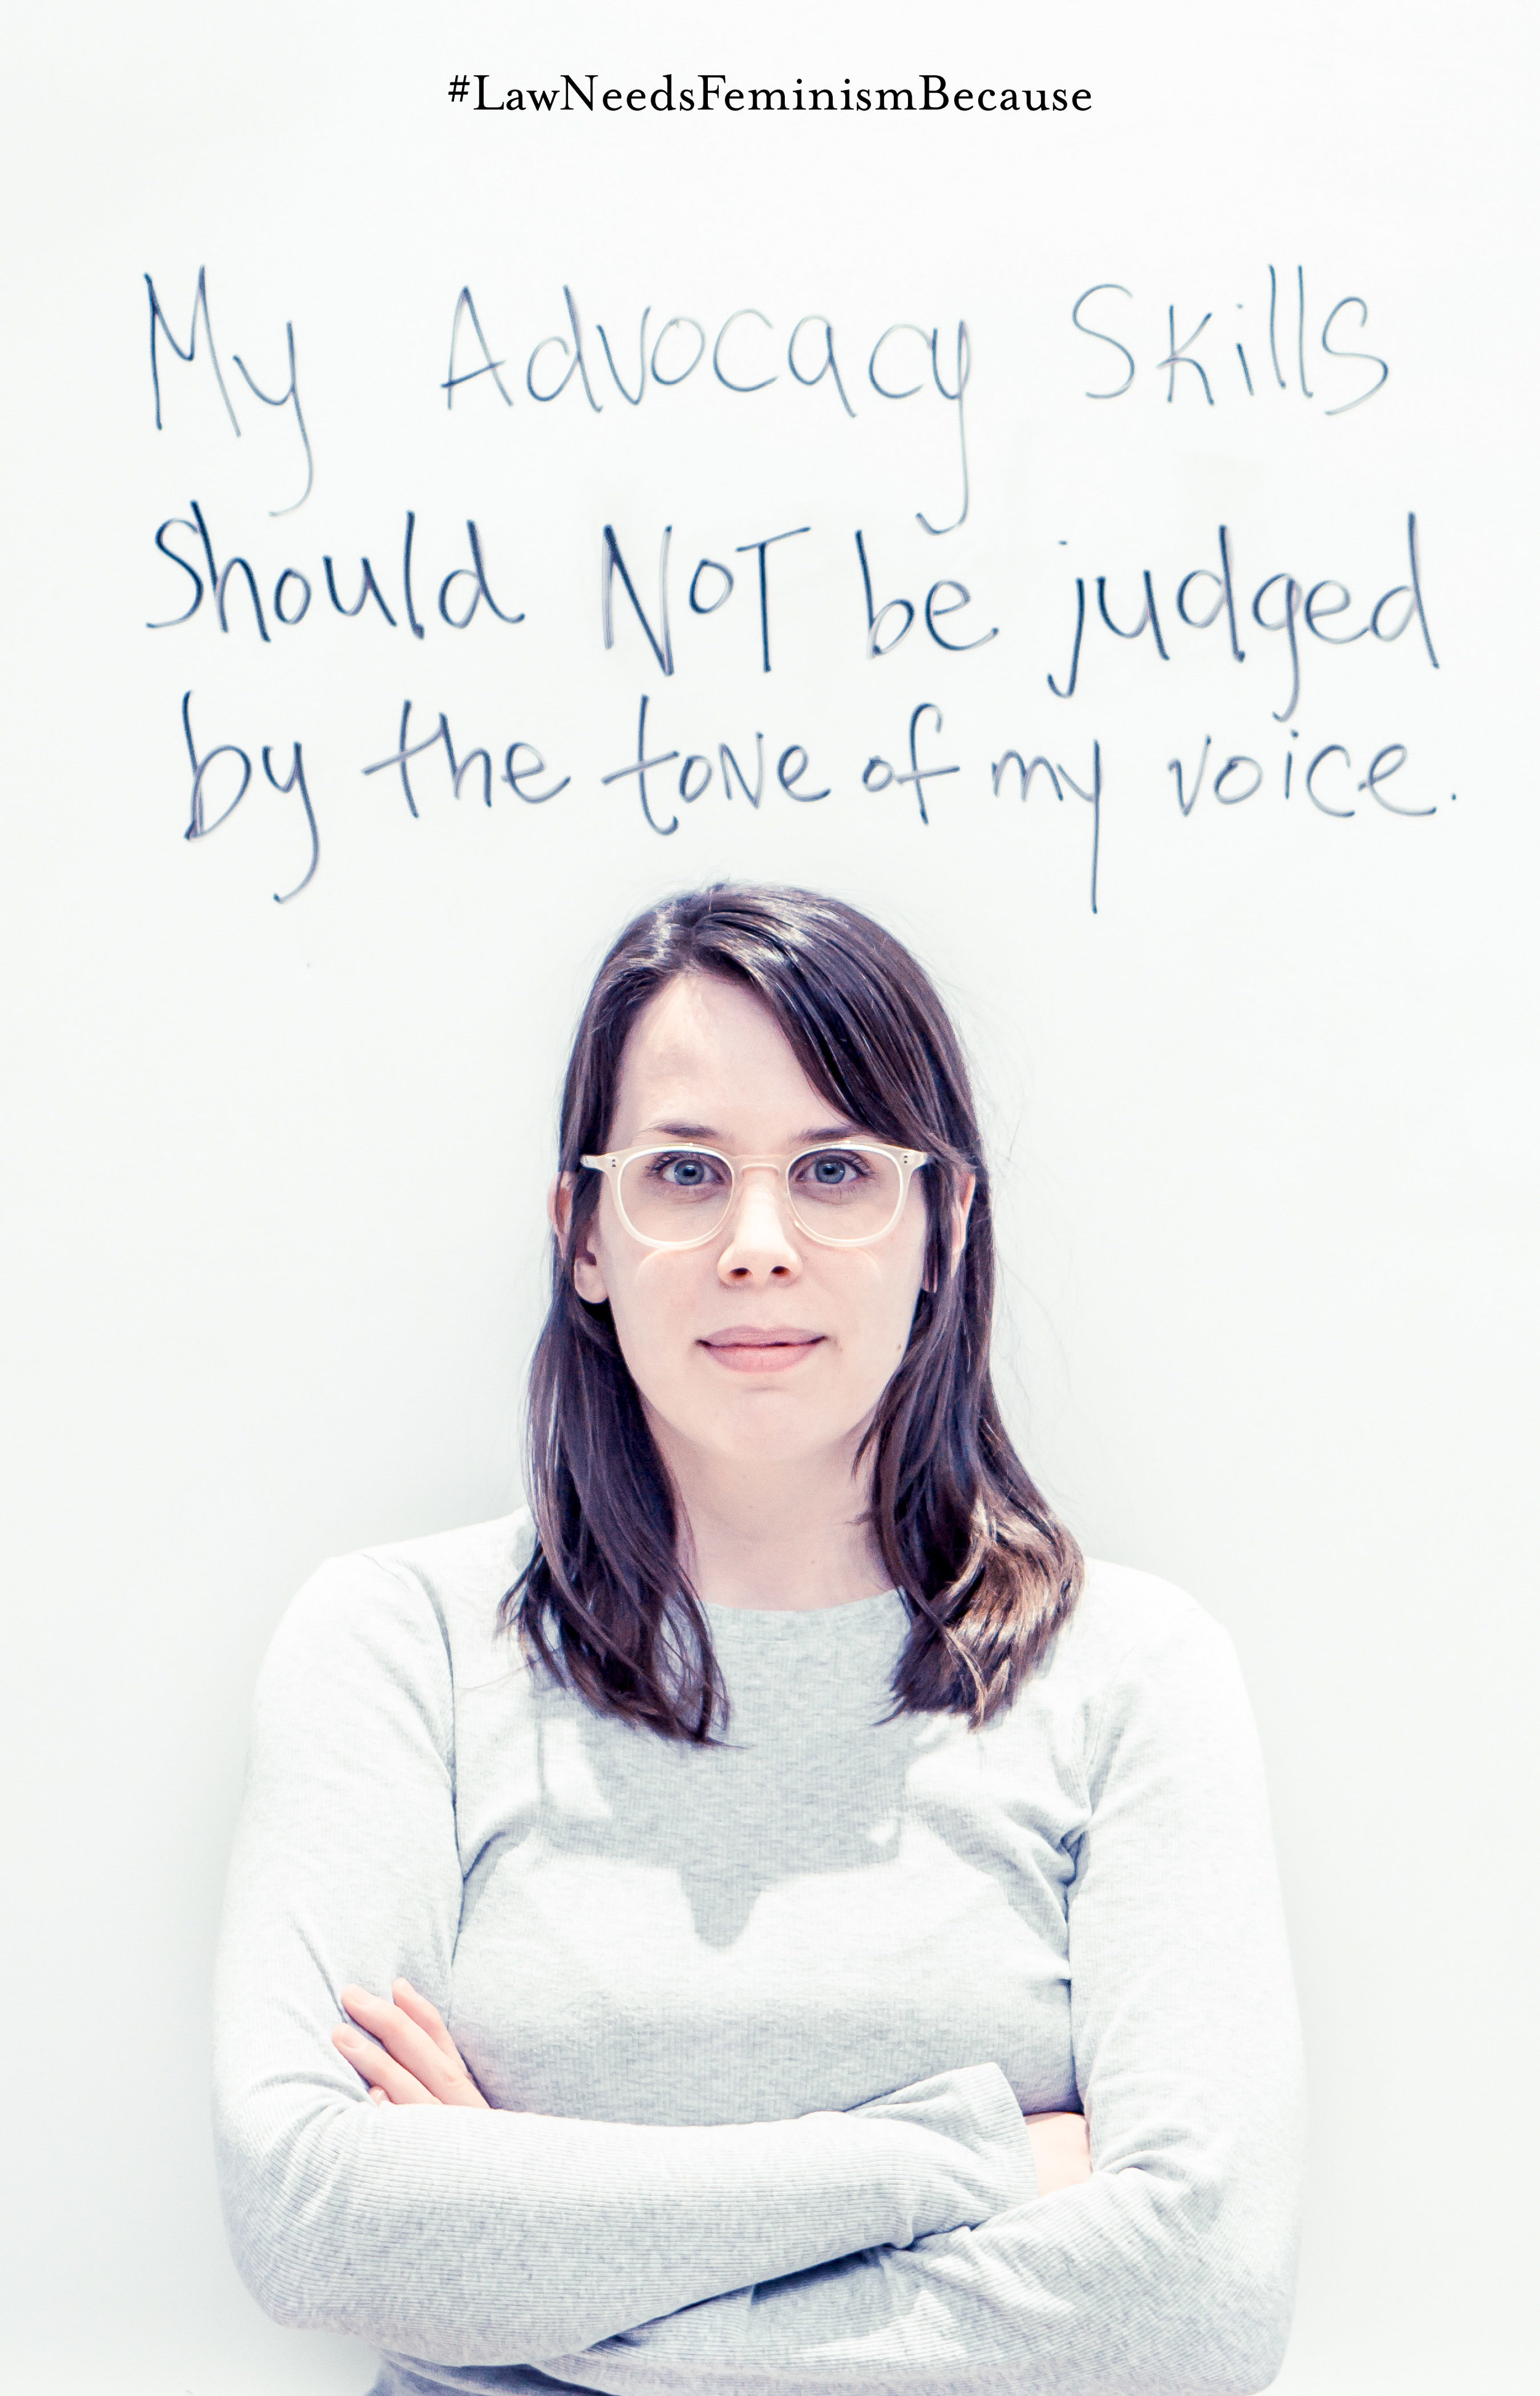 """Law Needs Feminism Because : """"my advocacy skills should NOT be judged by the tone of my voice."""""""